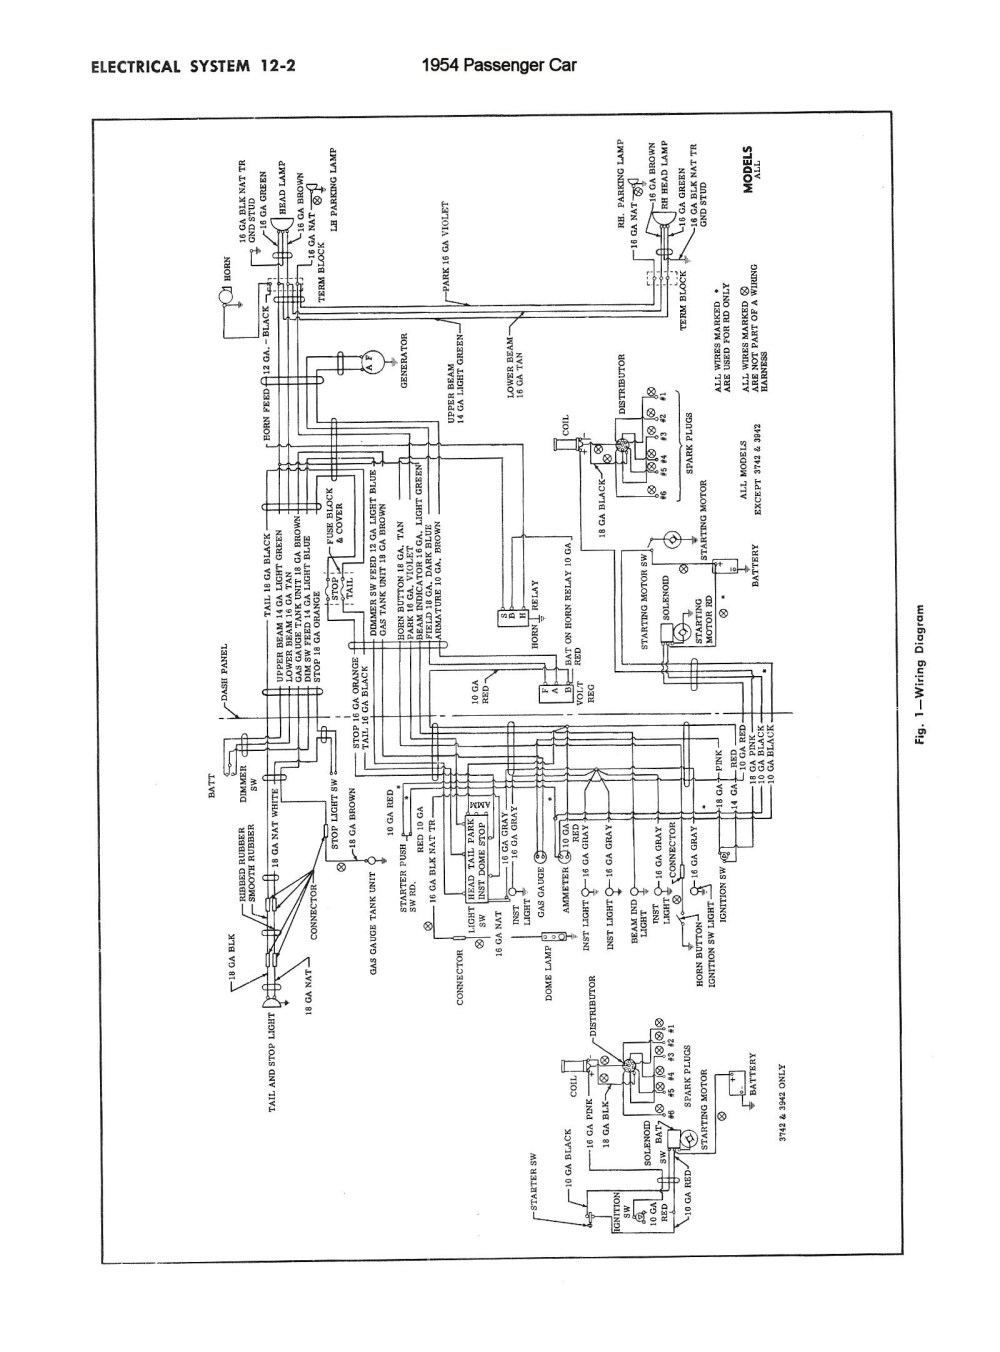 medium resolution of wiring diagram for a 1950 dodge truck wiring diagram info 1950 dodge wiring harness including international truck radio wiring